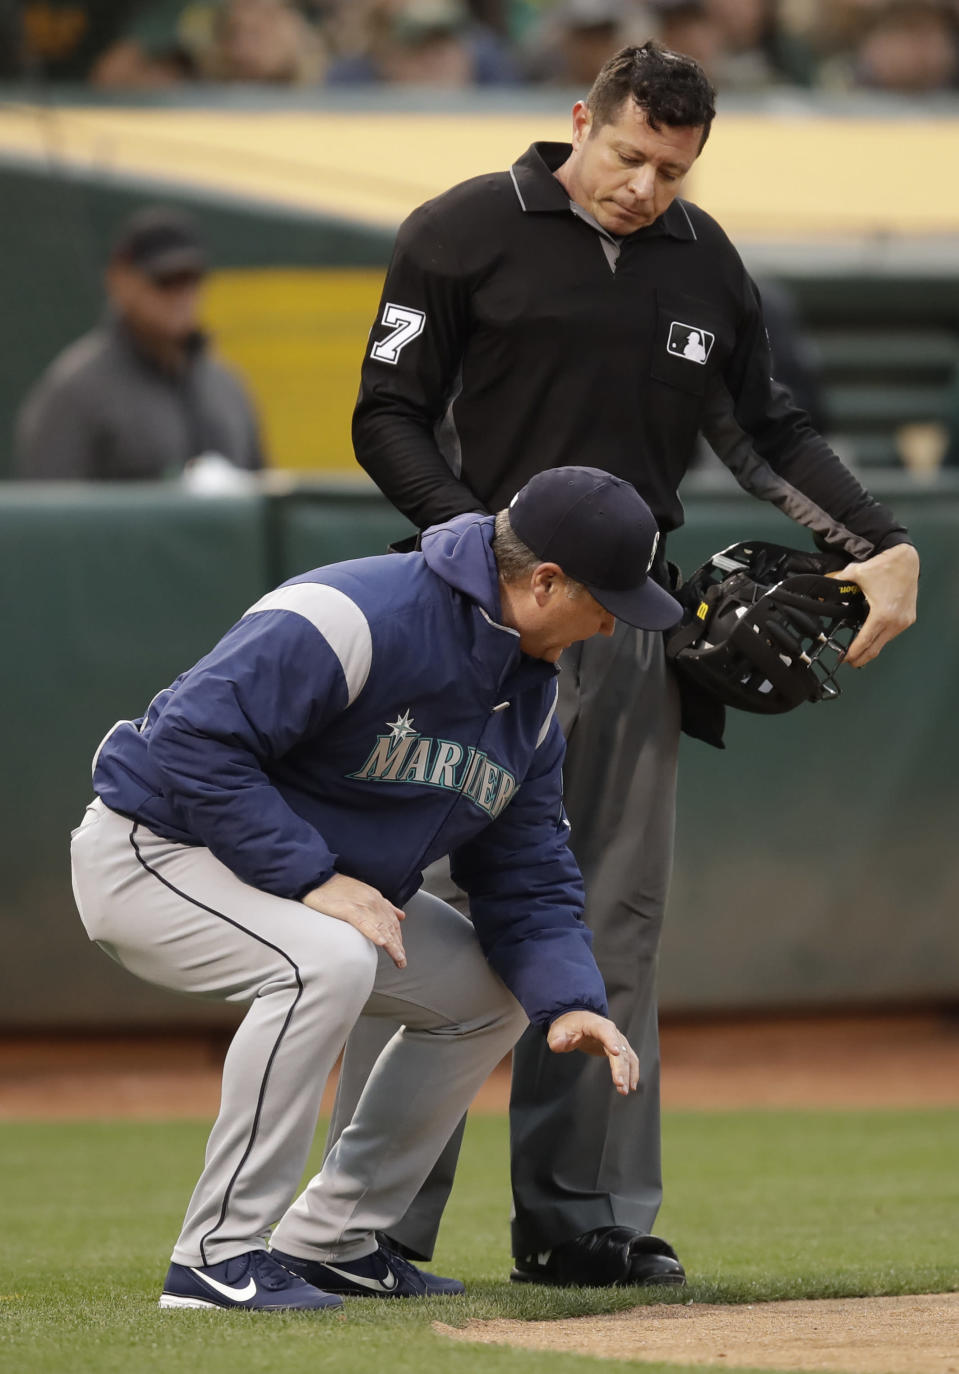 Seattle Mariners manager Scott Servais, left, squats at home plate as he speaks with umpire Carlos Torres in the fourth inning of a baseball game against the Oakland Athletics, Saturday, June 15, 2019, in Oakland, Calif. Servais was ejected from the game by Torres. (AP Photo/Ben Margot)